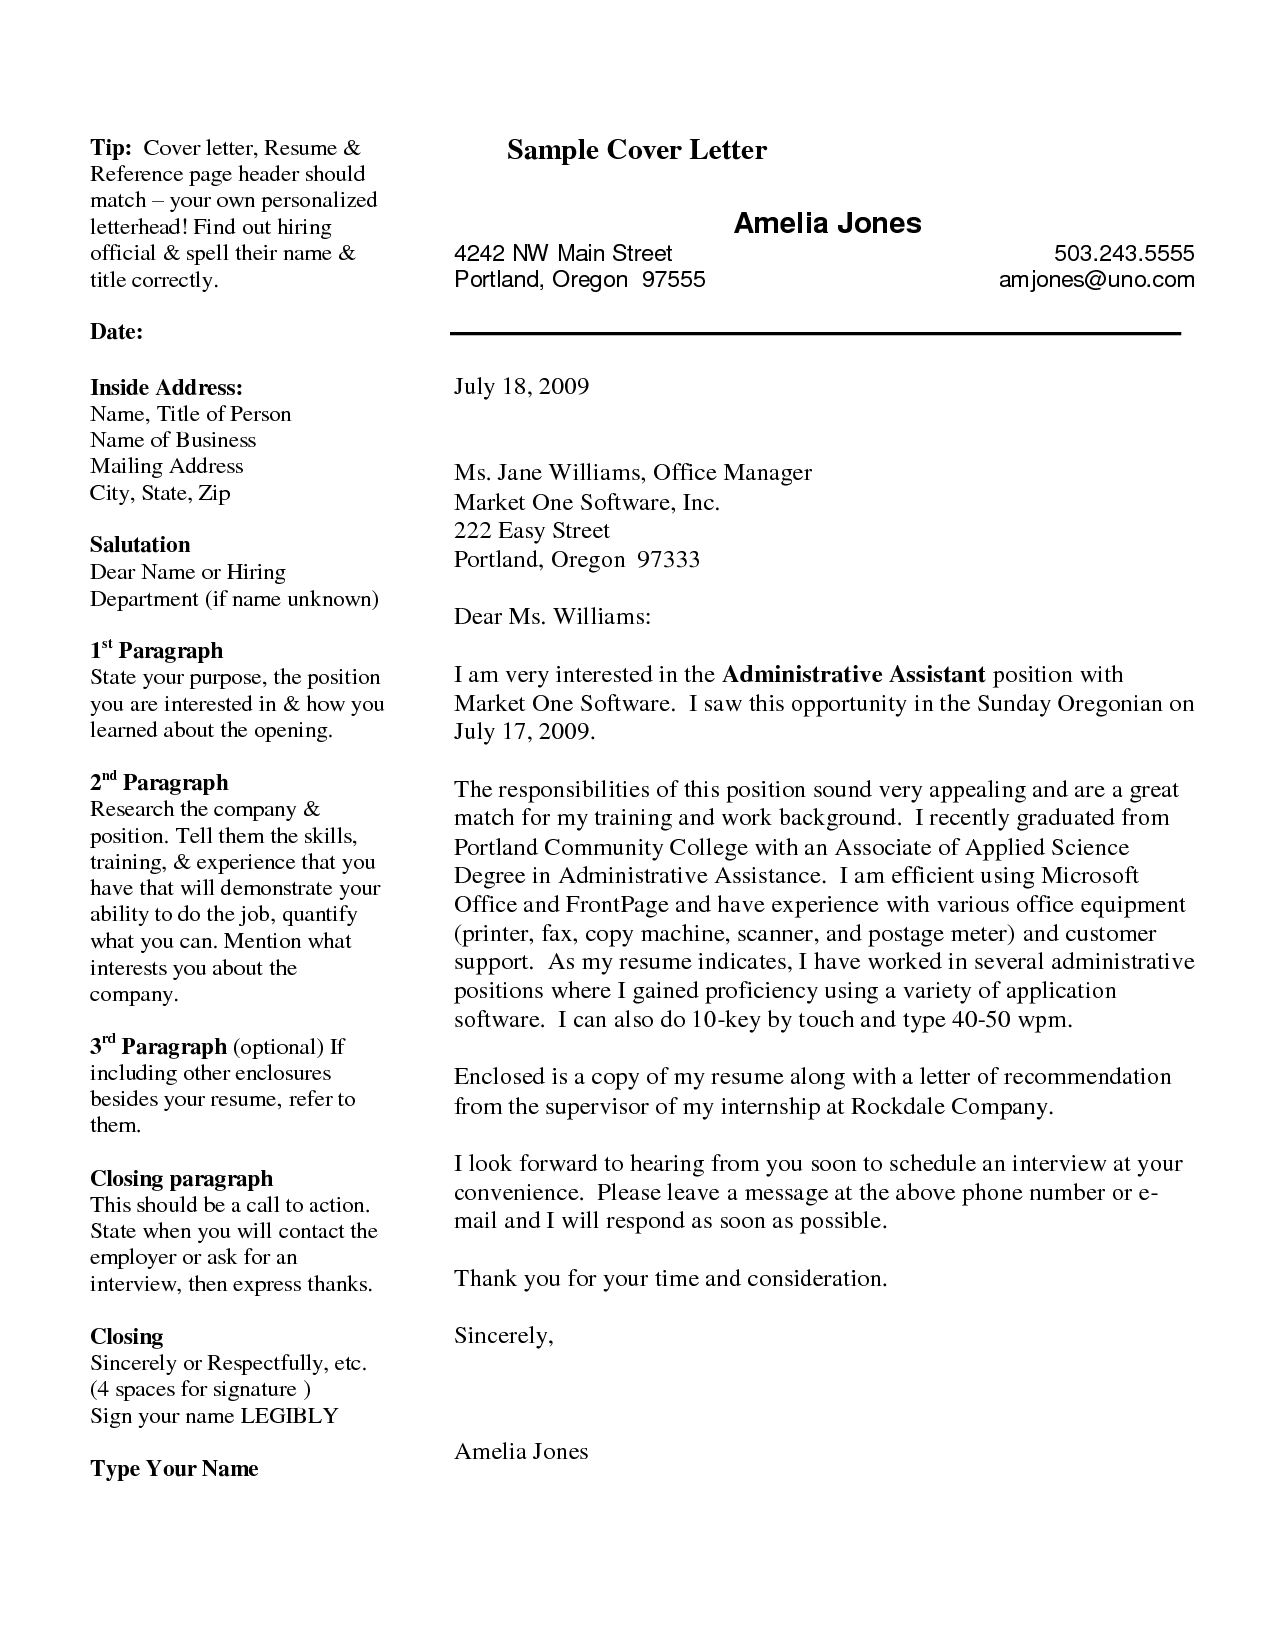 Resume Templates For Wordpad Professional Resume Cover Letter Samplesprofessional Resume Cover